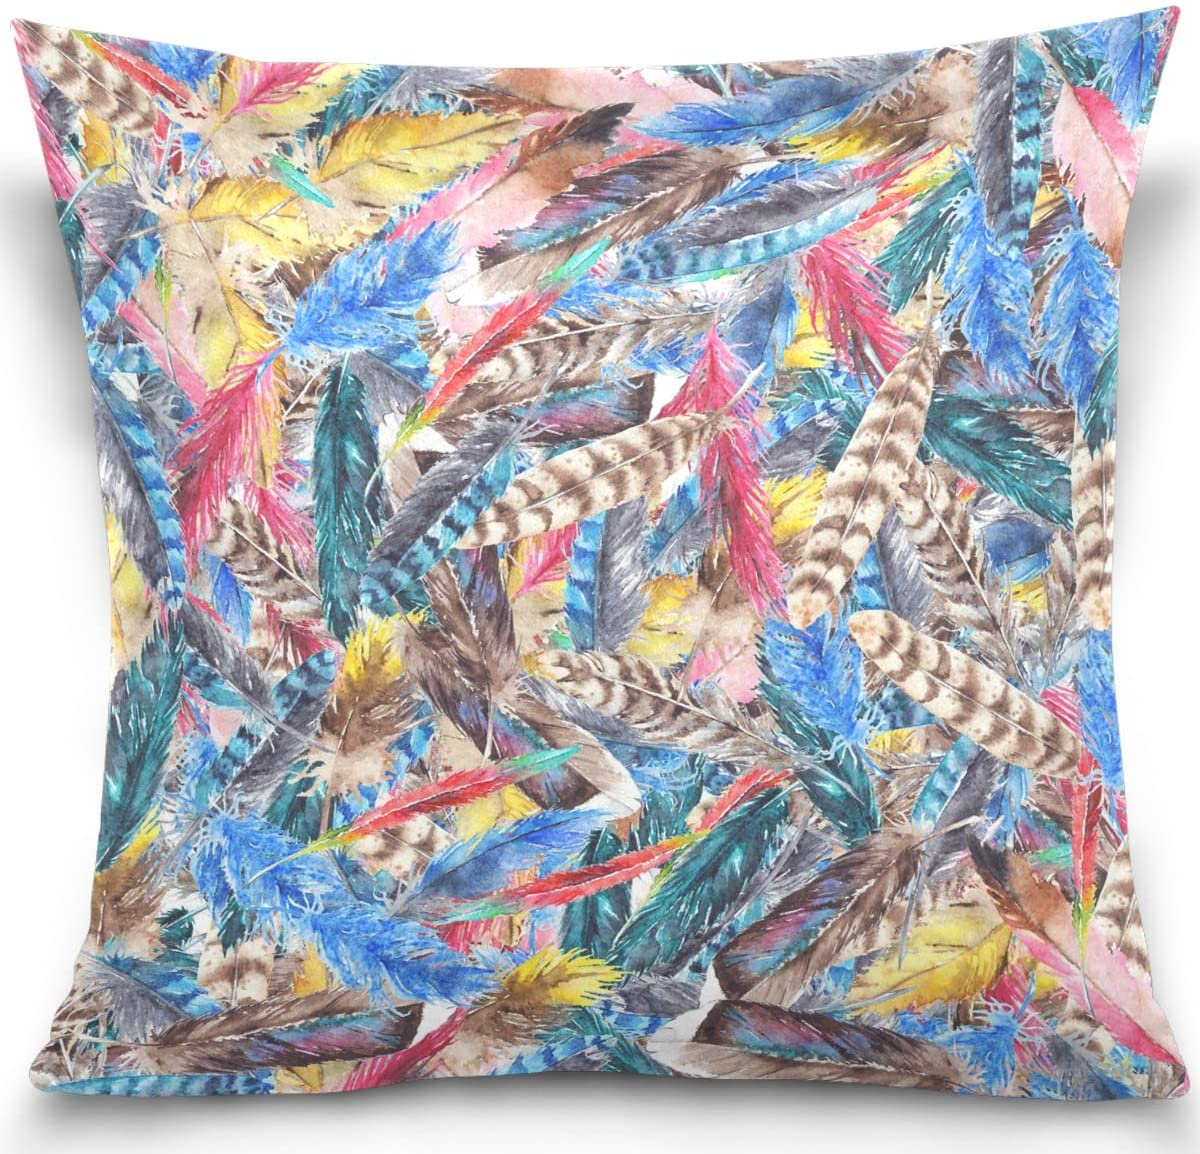 Olinyou Vintage Indian Feather Colorful Throw Pillow Cases Decorative Square Pillowcase Cushion Cover 16 x 16 Inch